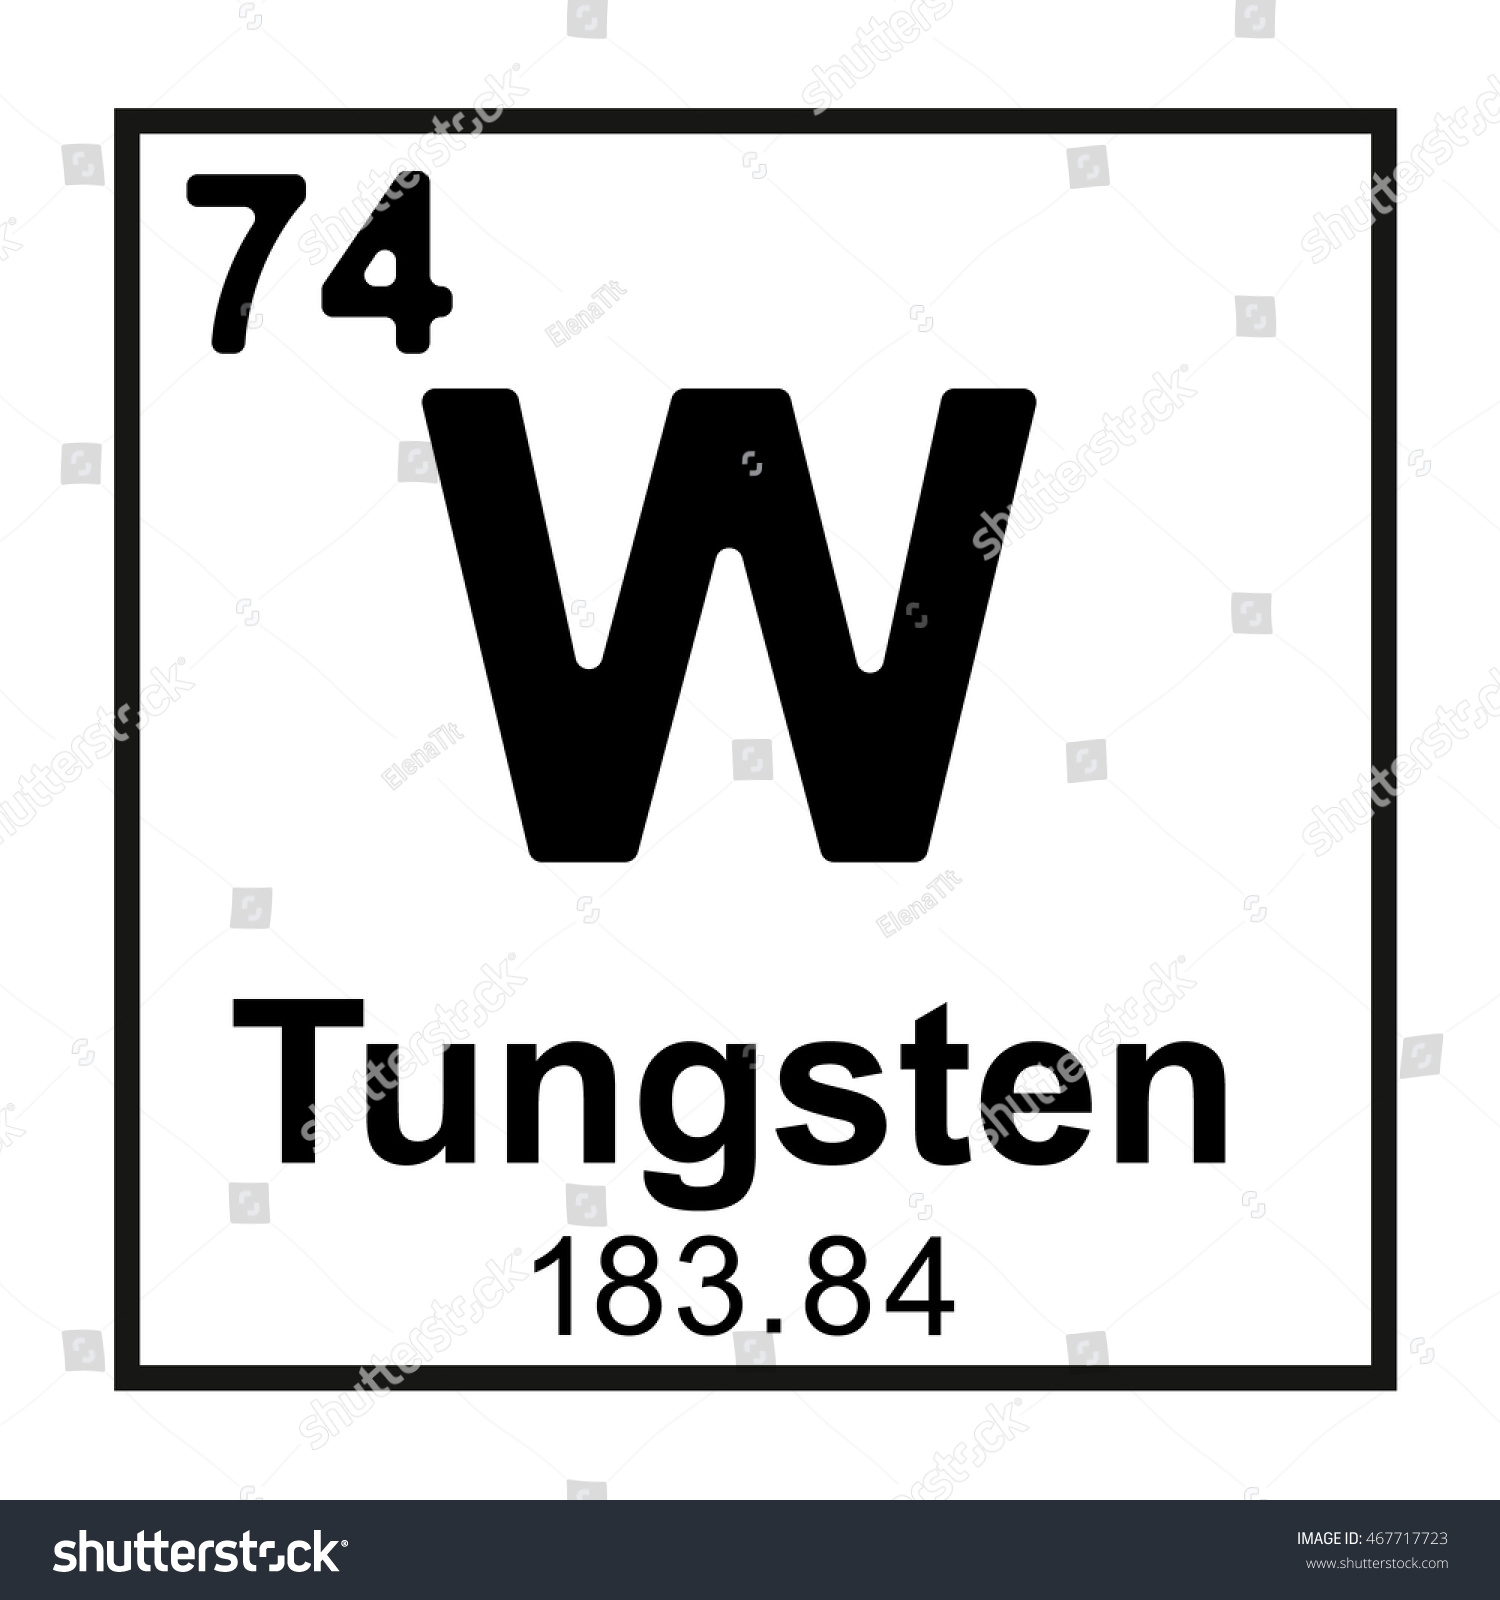 Periodic table element tungsten stock vector 467717723 shutterstock periodic table element tungsten gamestrikefo Gallery